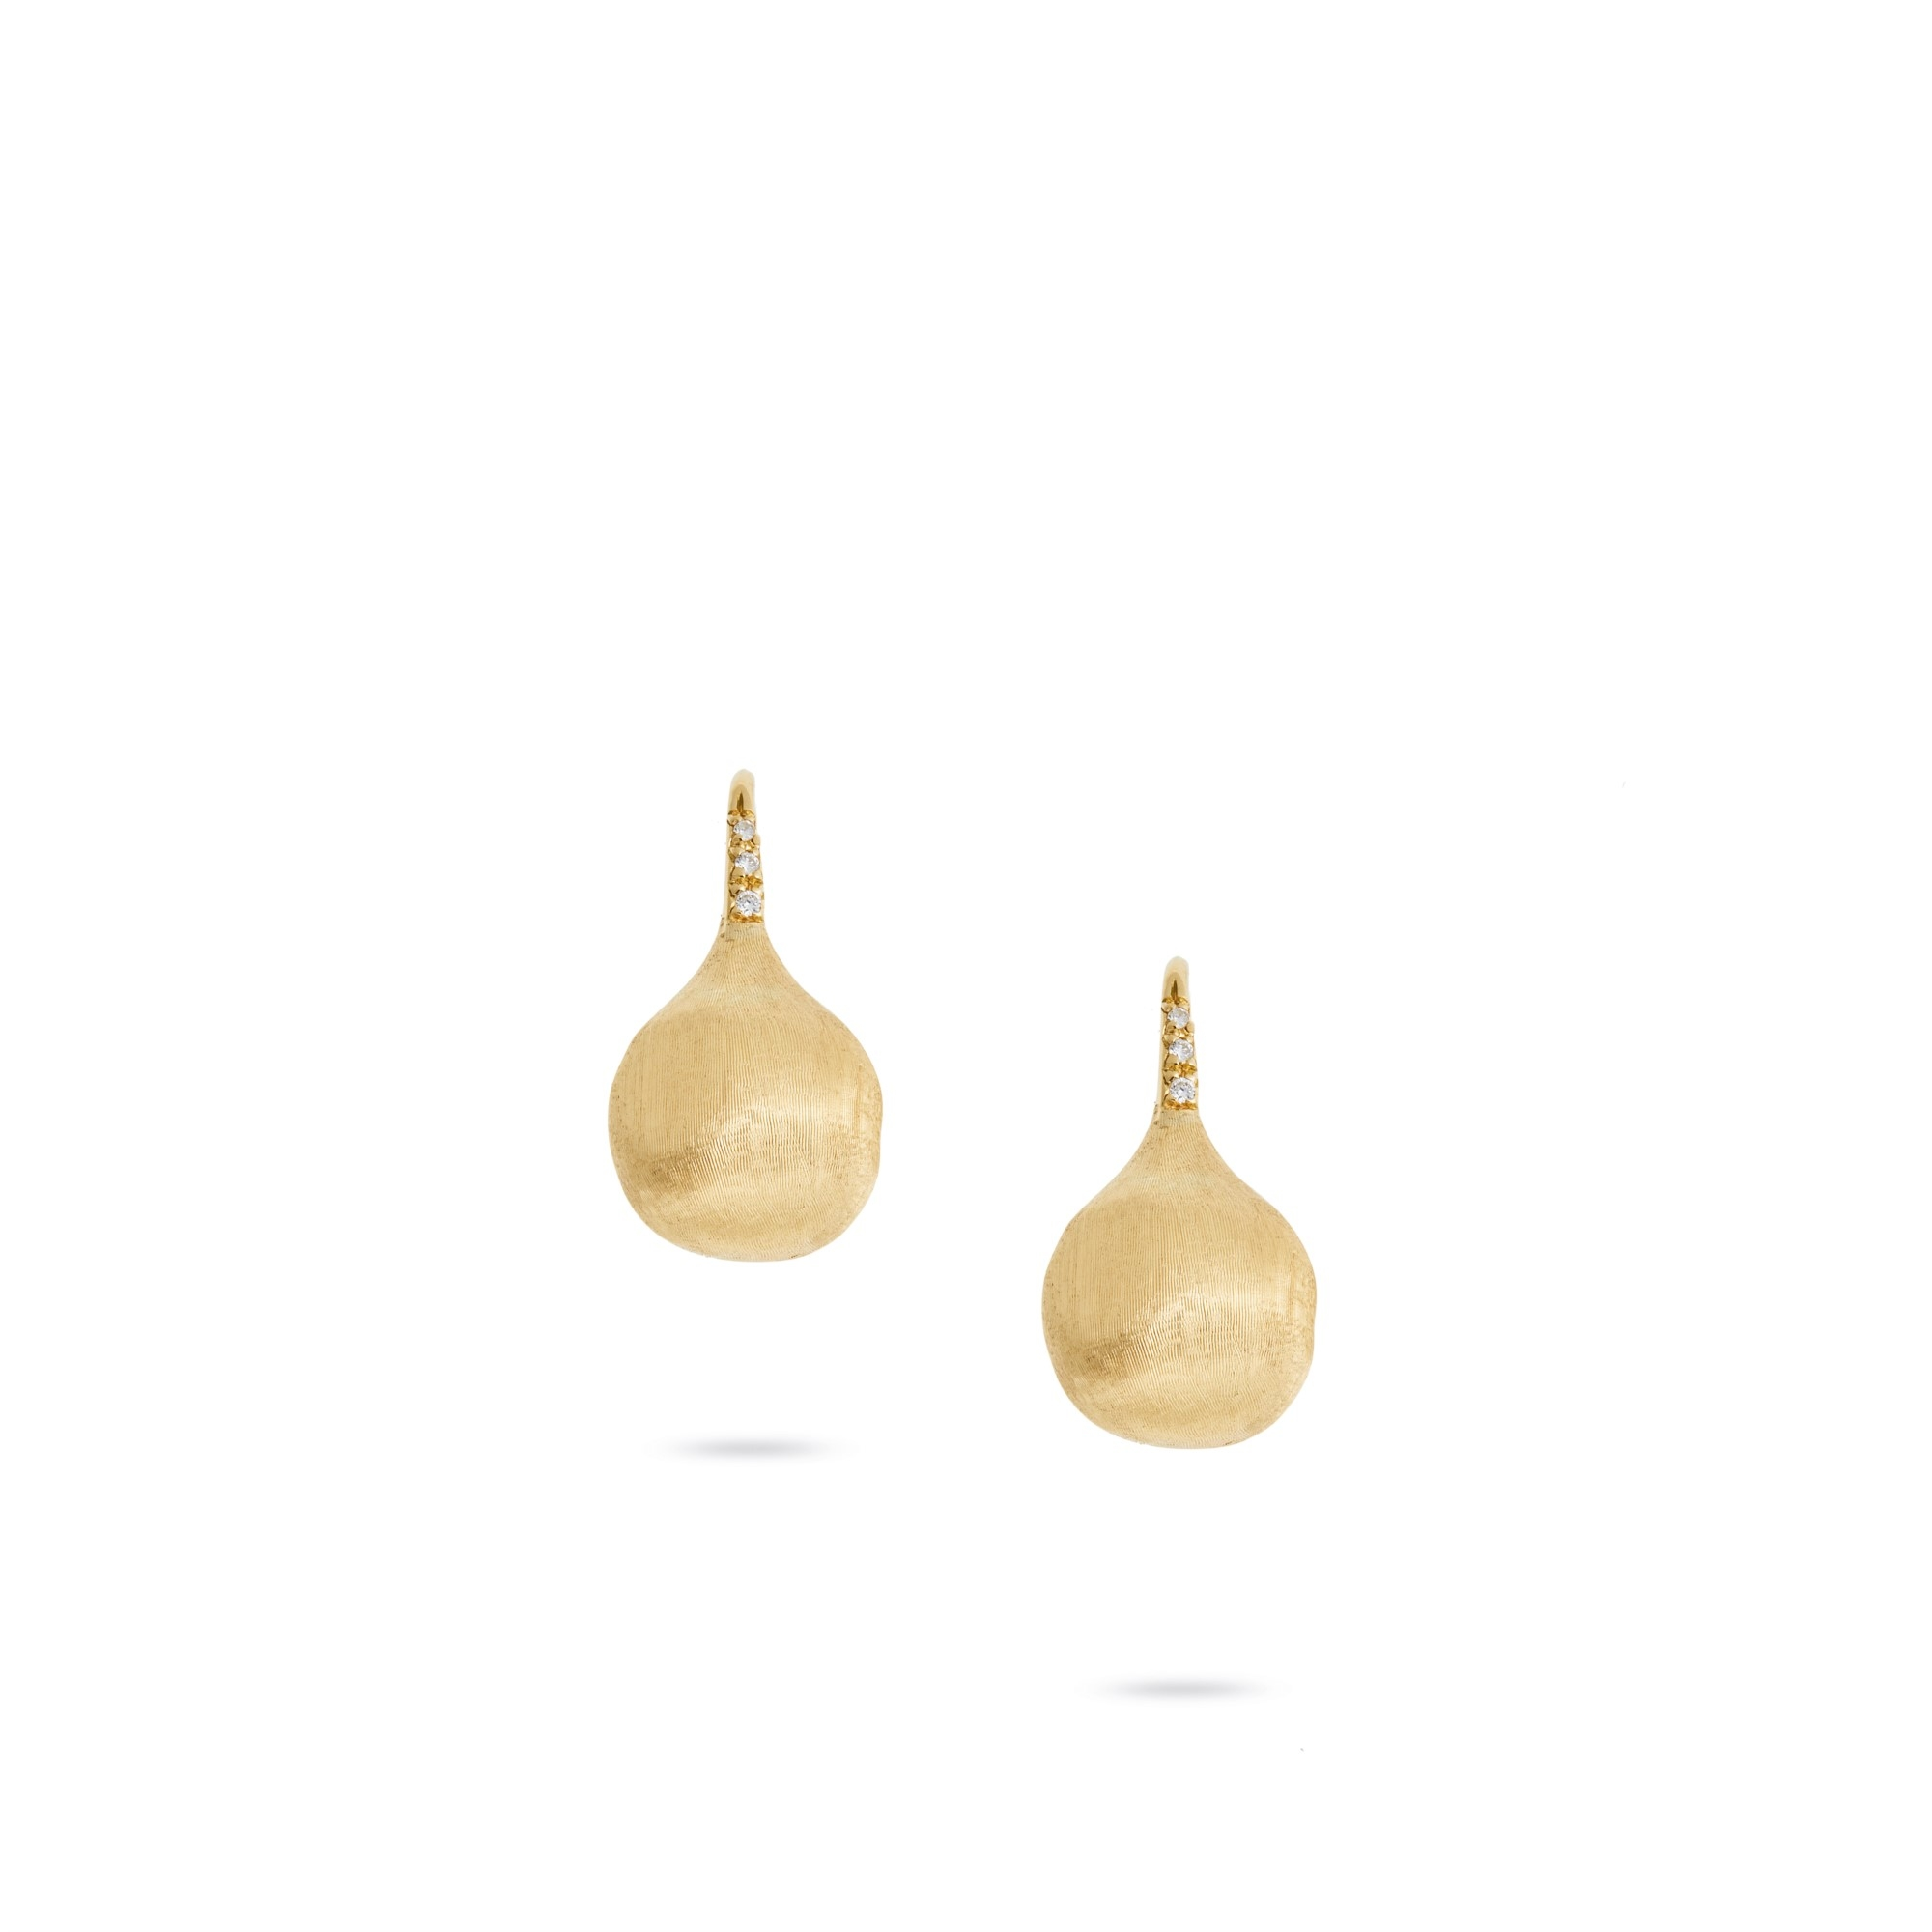 Marco Bicego 18K Yellow Gold .05cts  Diamonds Gold Earrings with Stones OB1632-A B Y